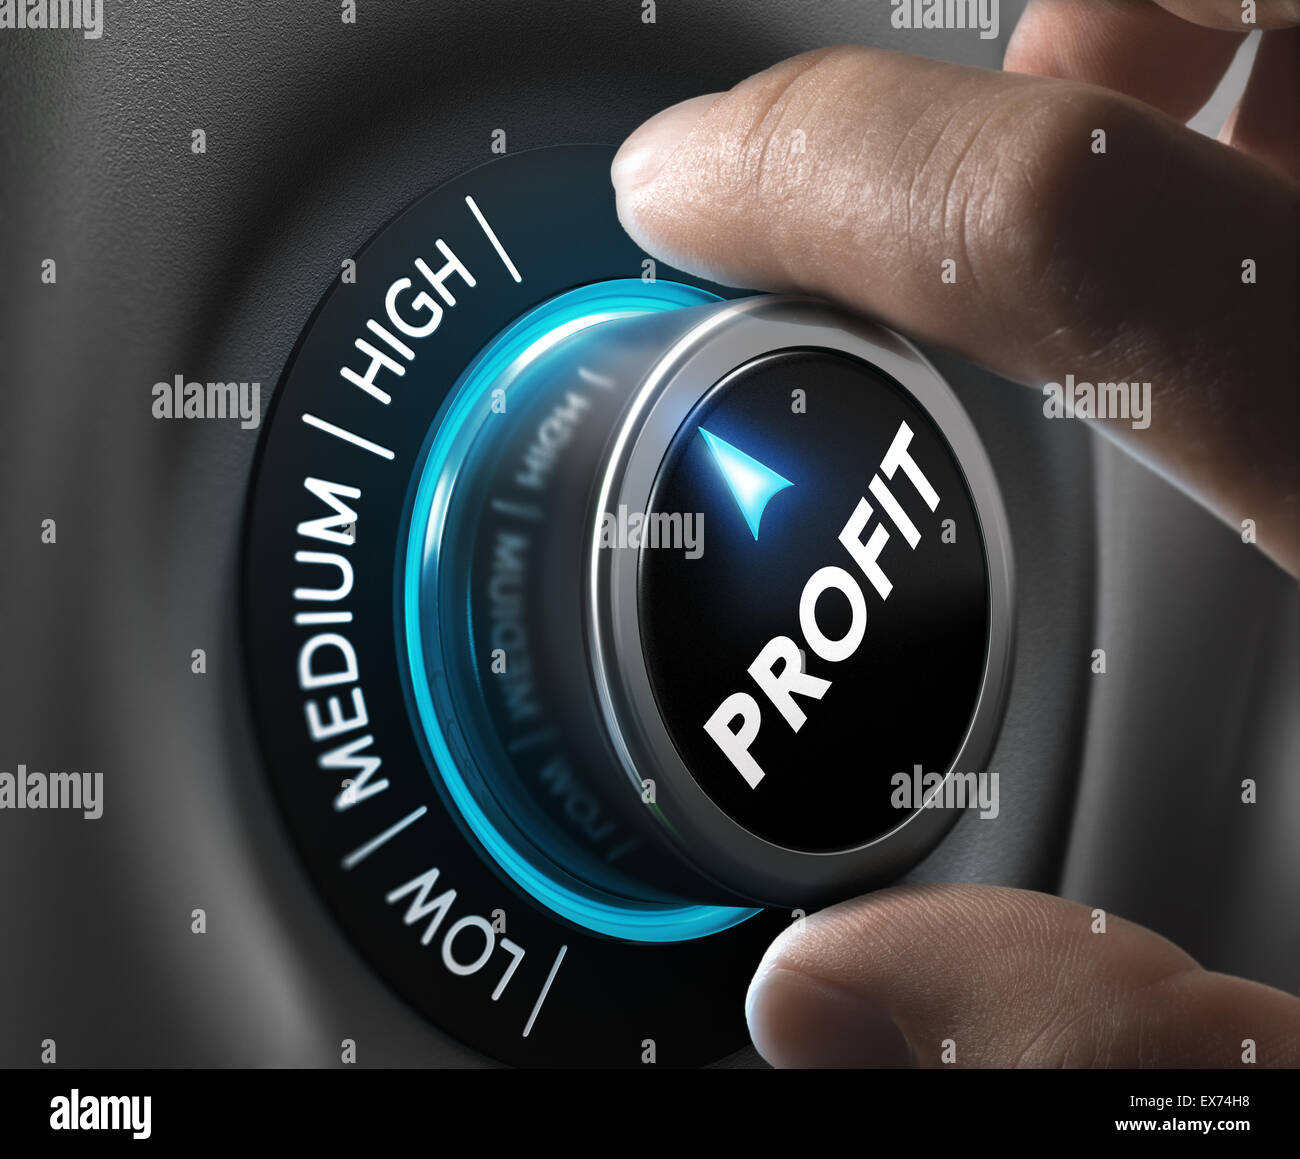 Man fingers setting profit button on highest position. Concept image for illustration of profitability or return - Stock Image